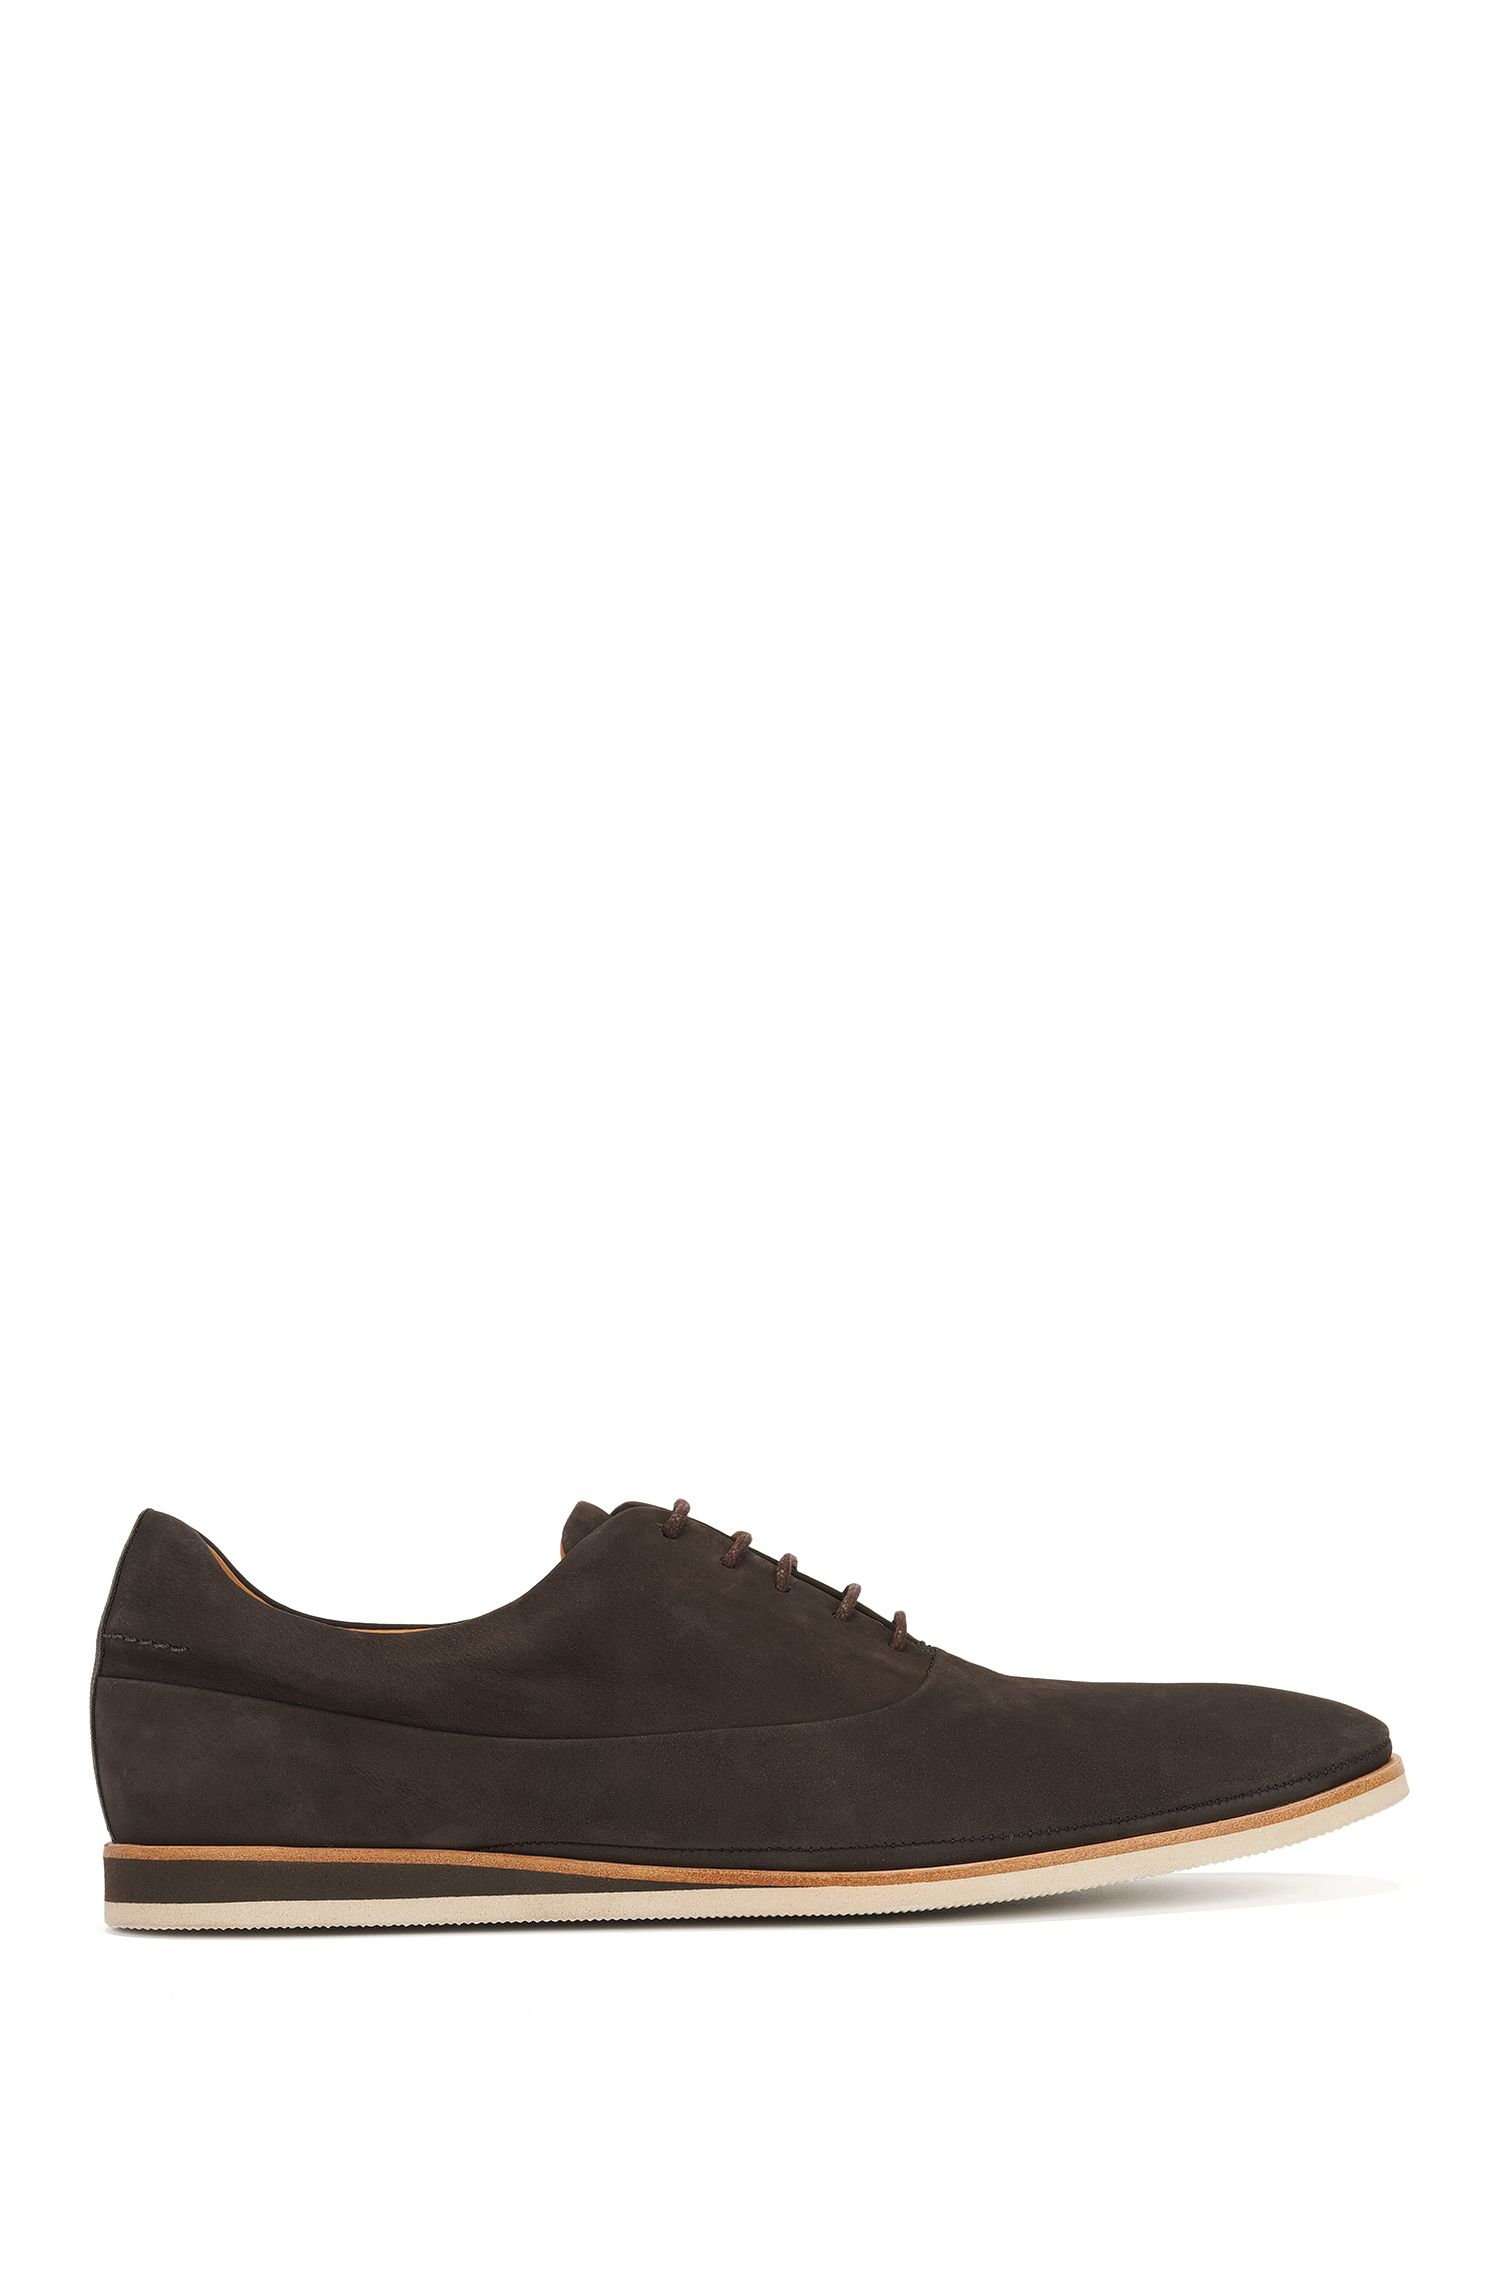 Casual Oxford shoes in soft nubuck